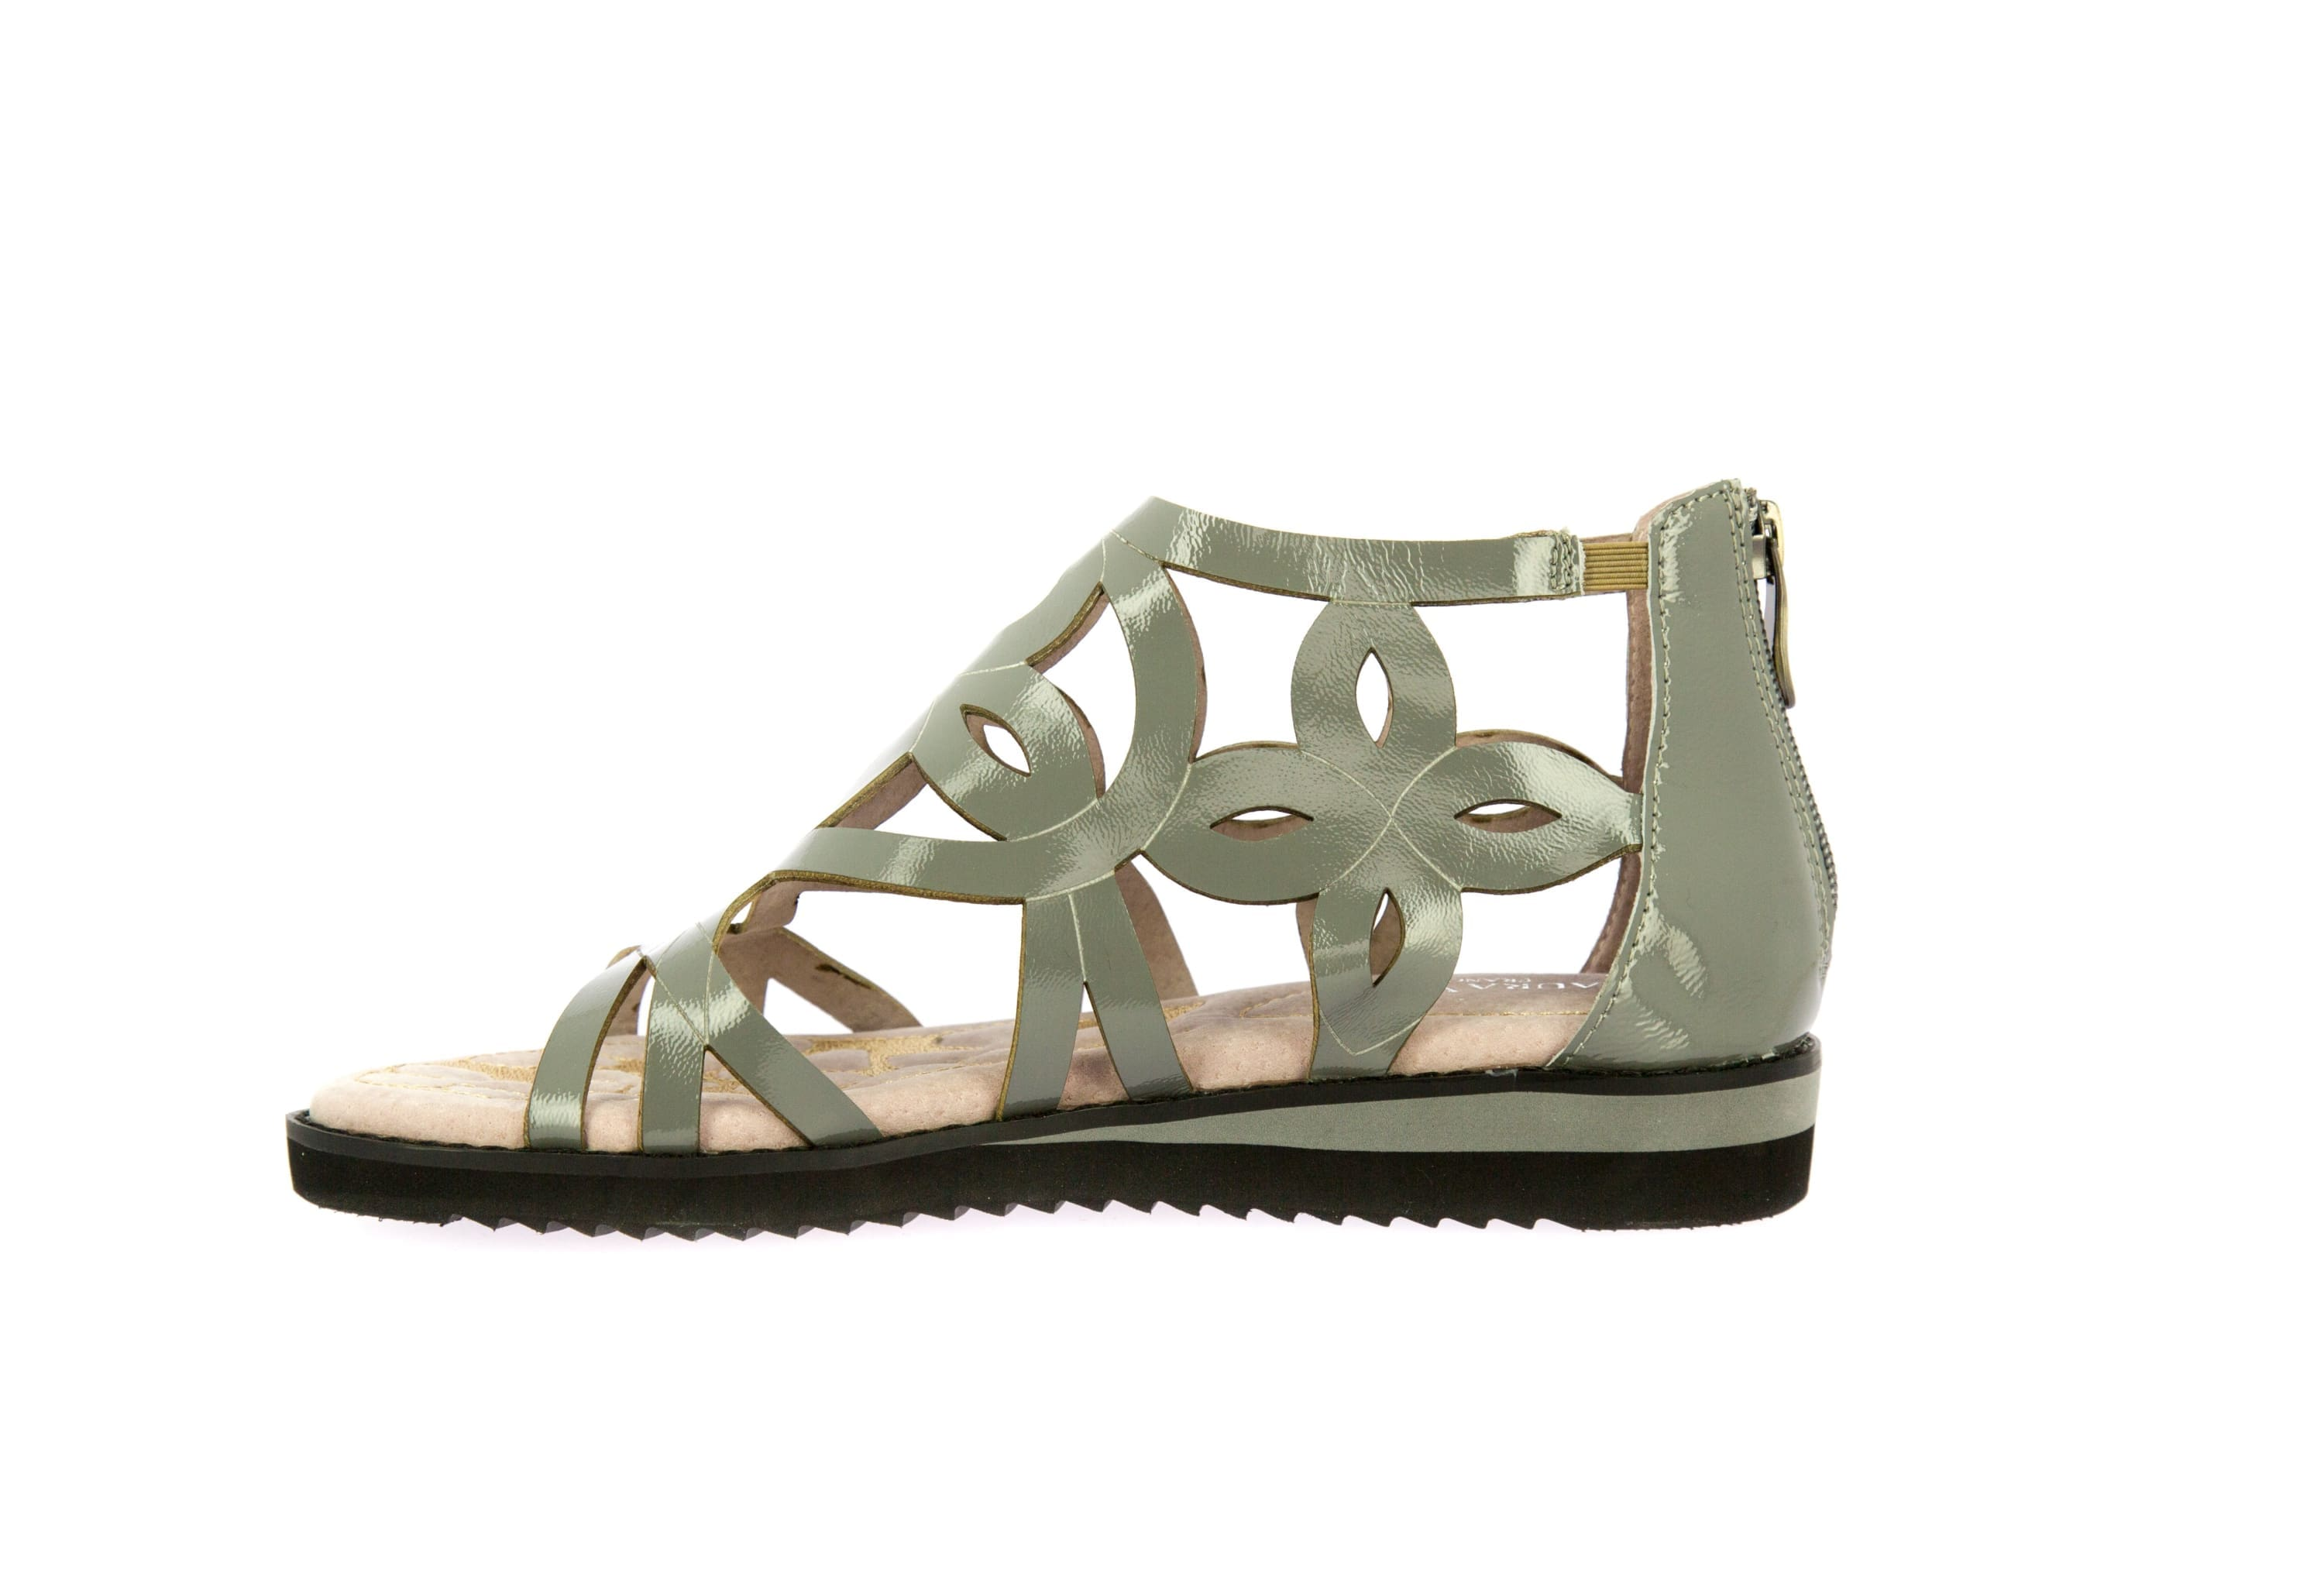 Chaussure FECLICIEO079 - Sandale